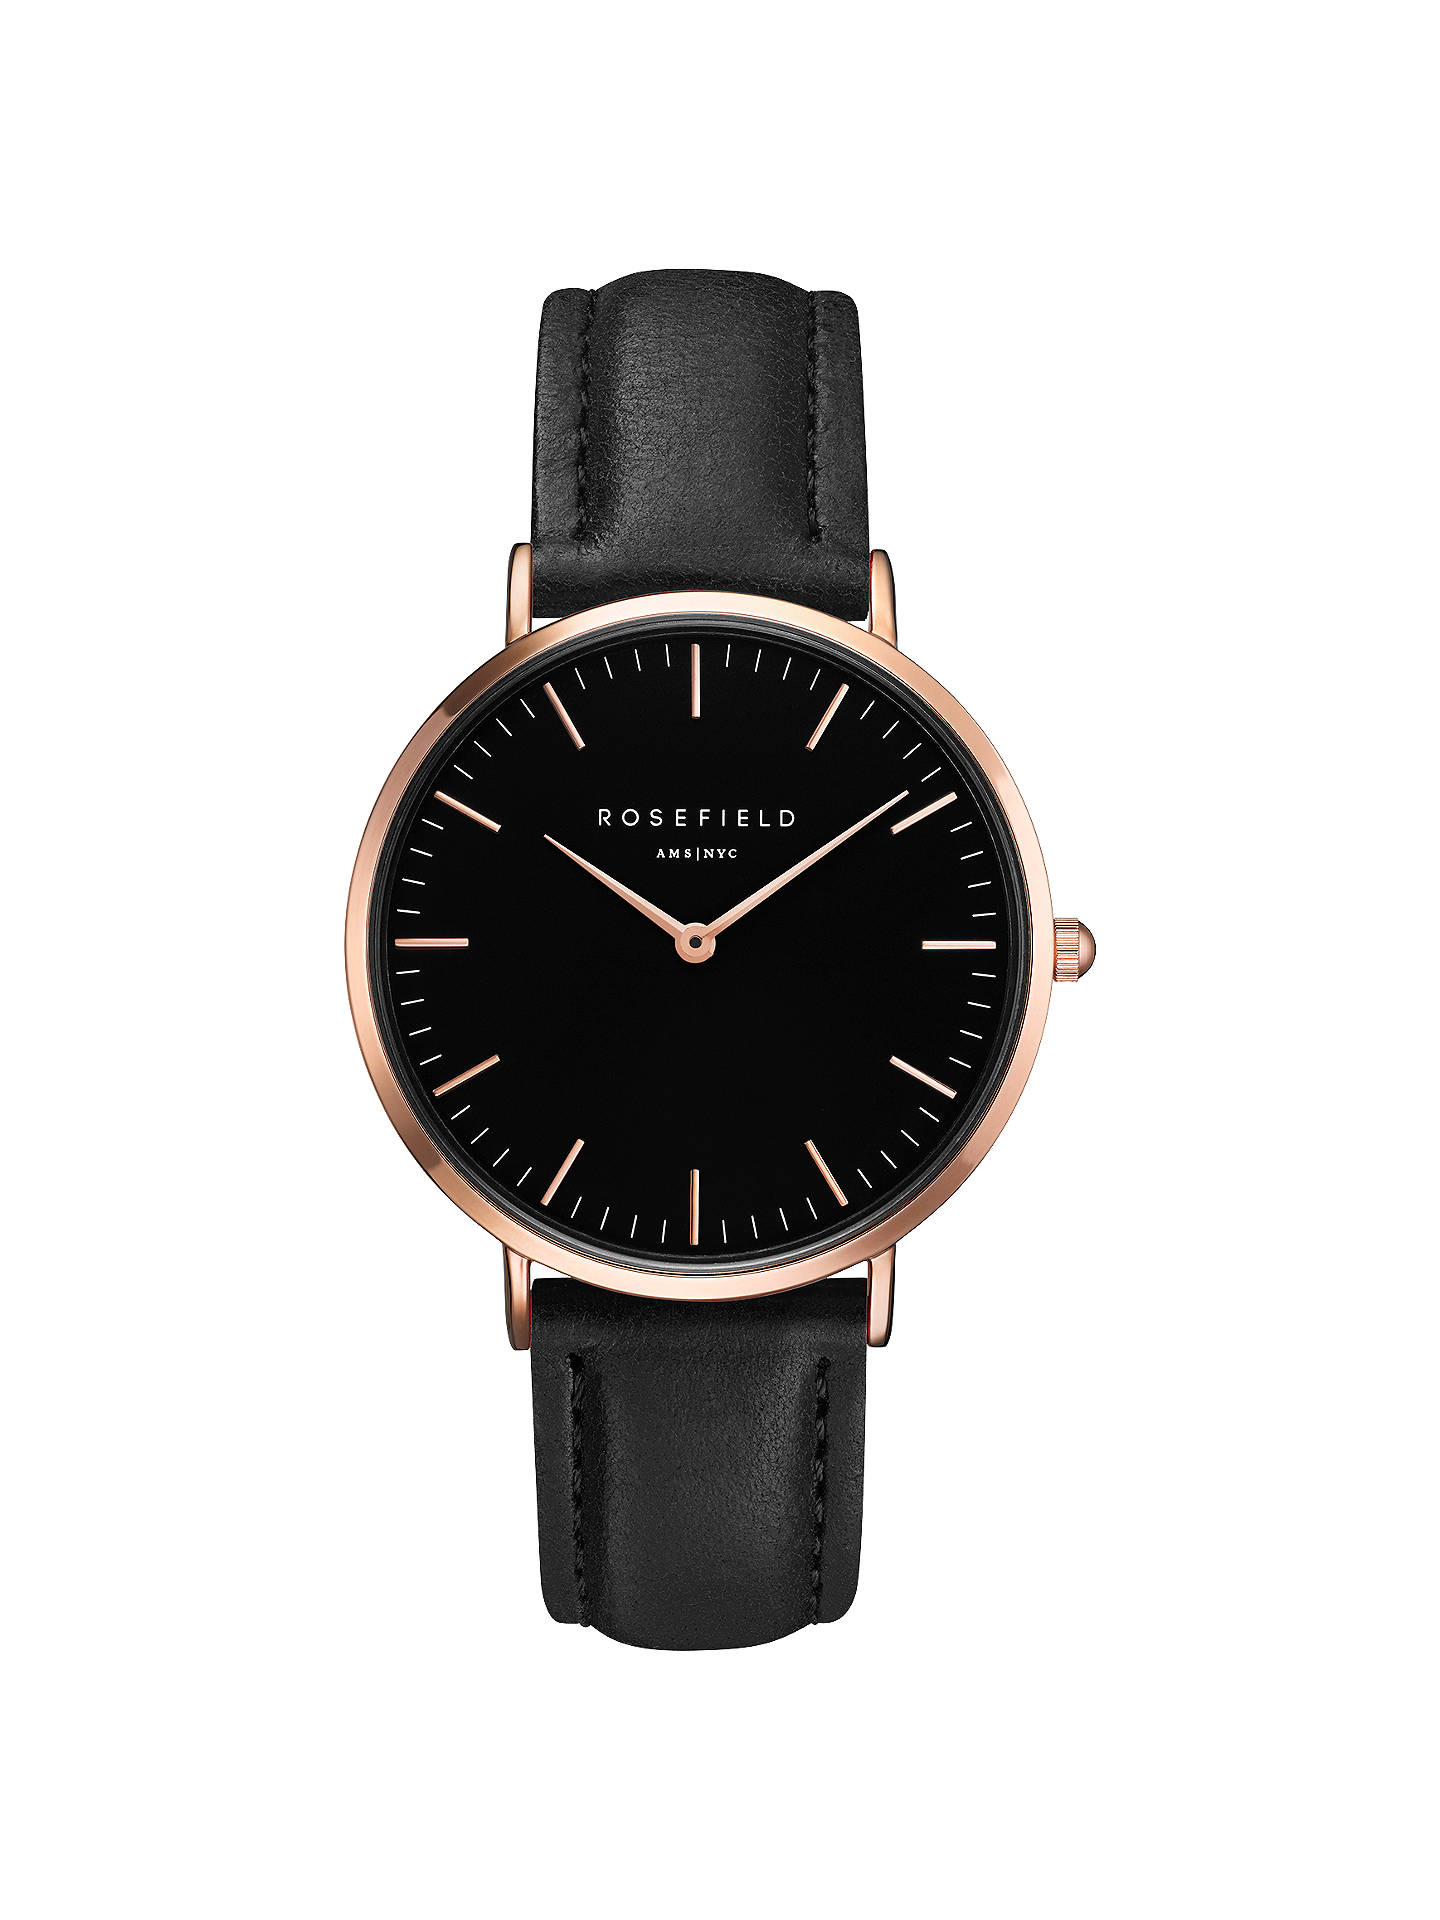 BuyROSEFIELD BBBR-B11 Women's The Bowery Leather Strap Watch, Black Online at johnlewis.com